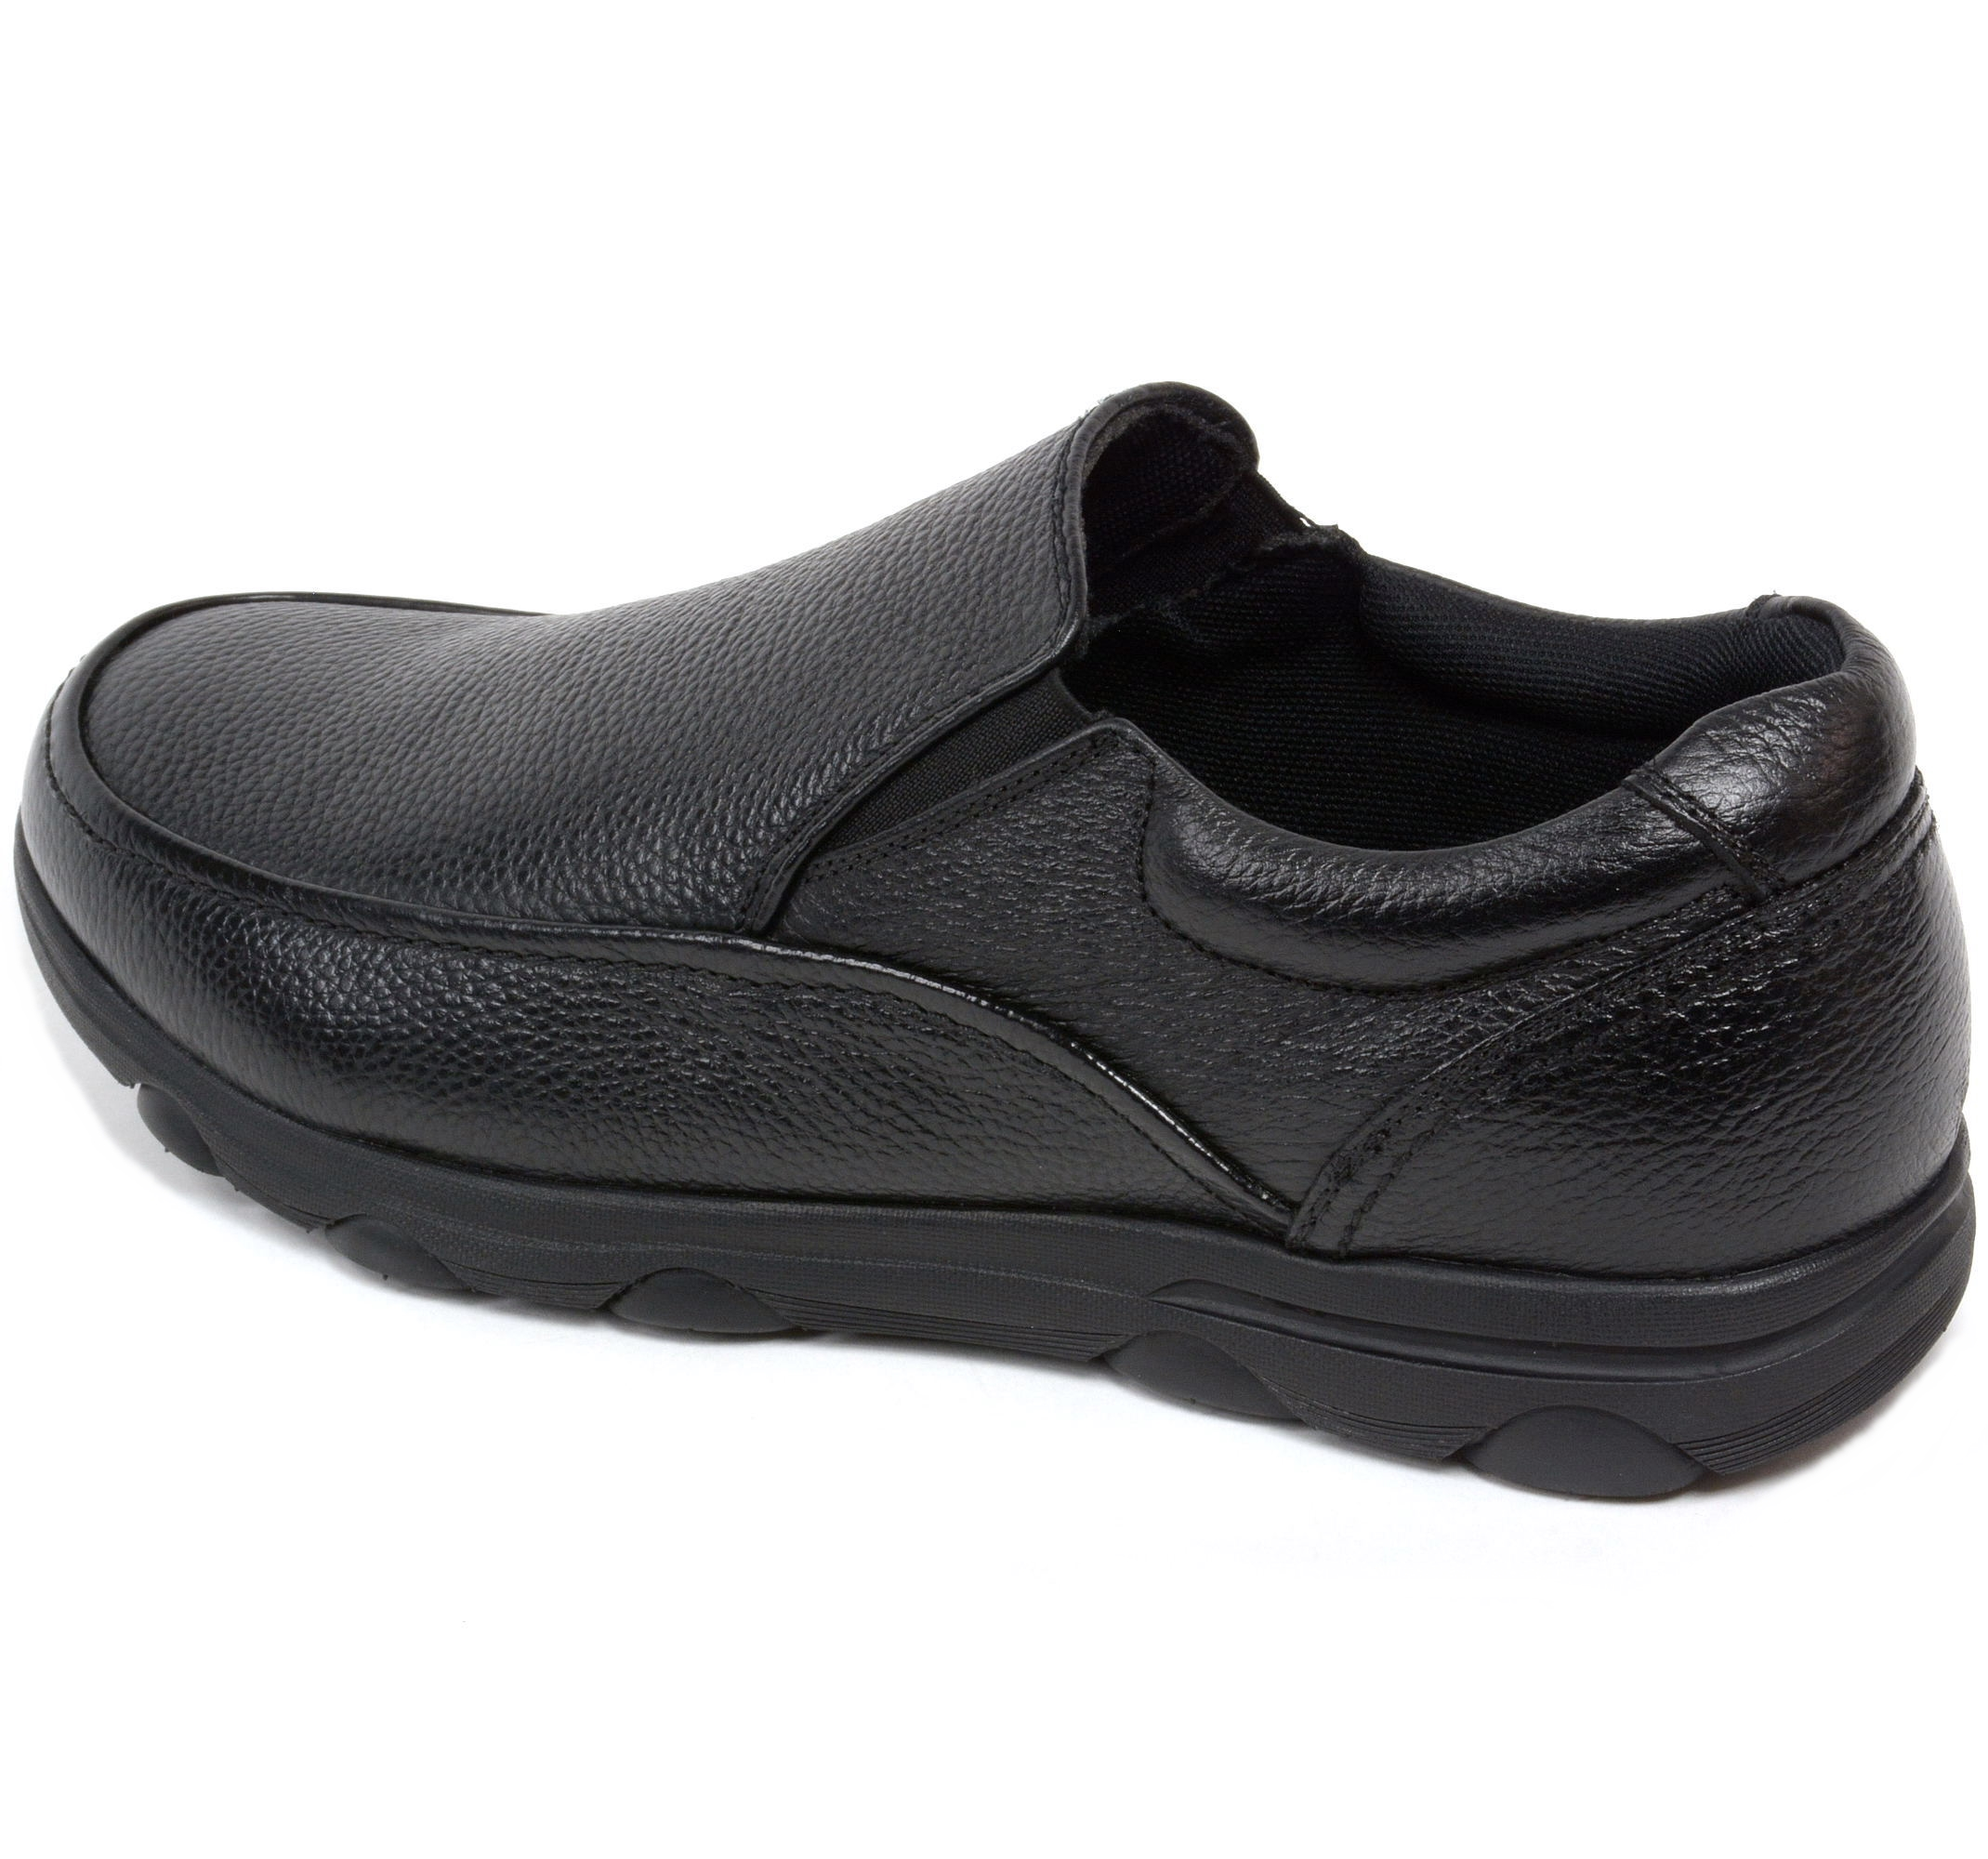 Slip Resistant Dress Shoes